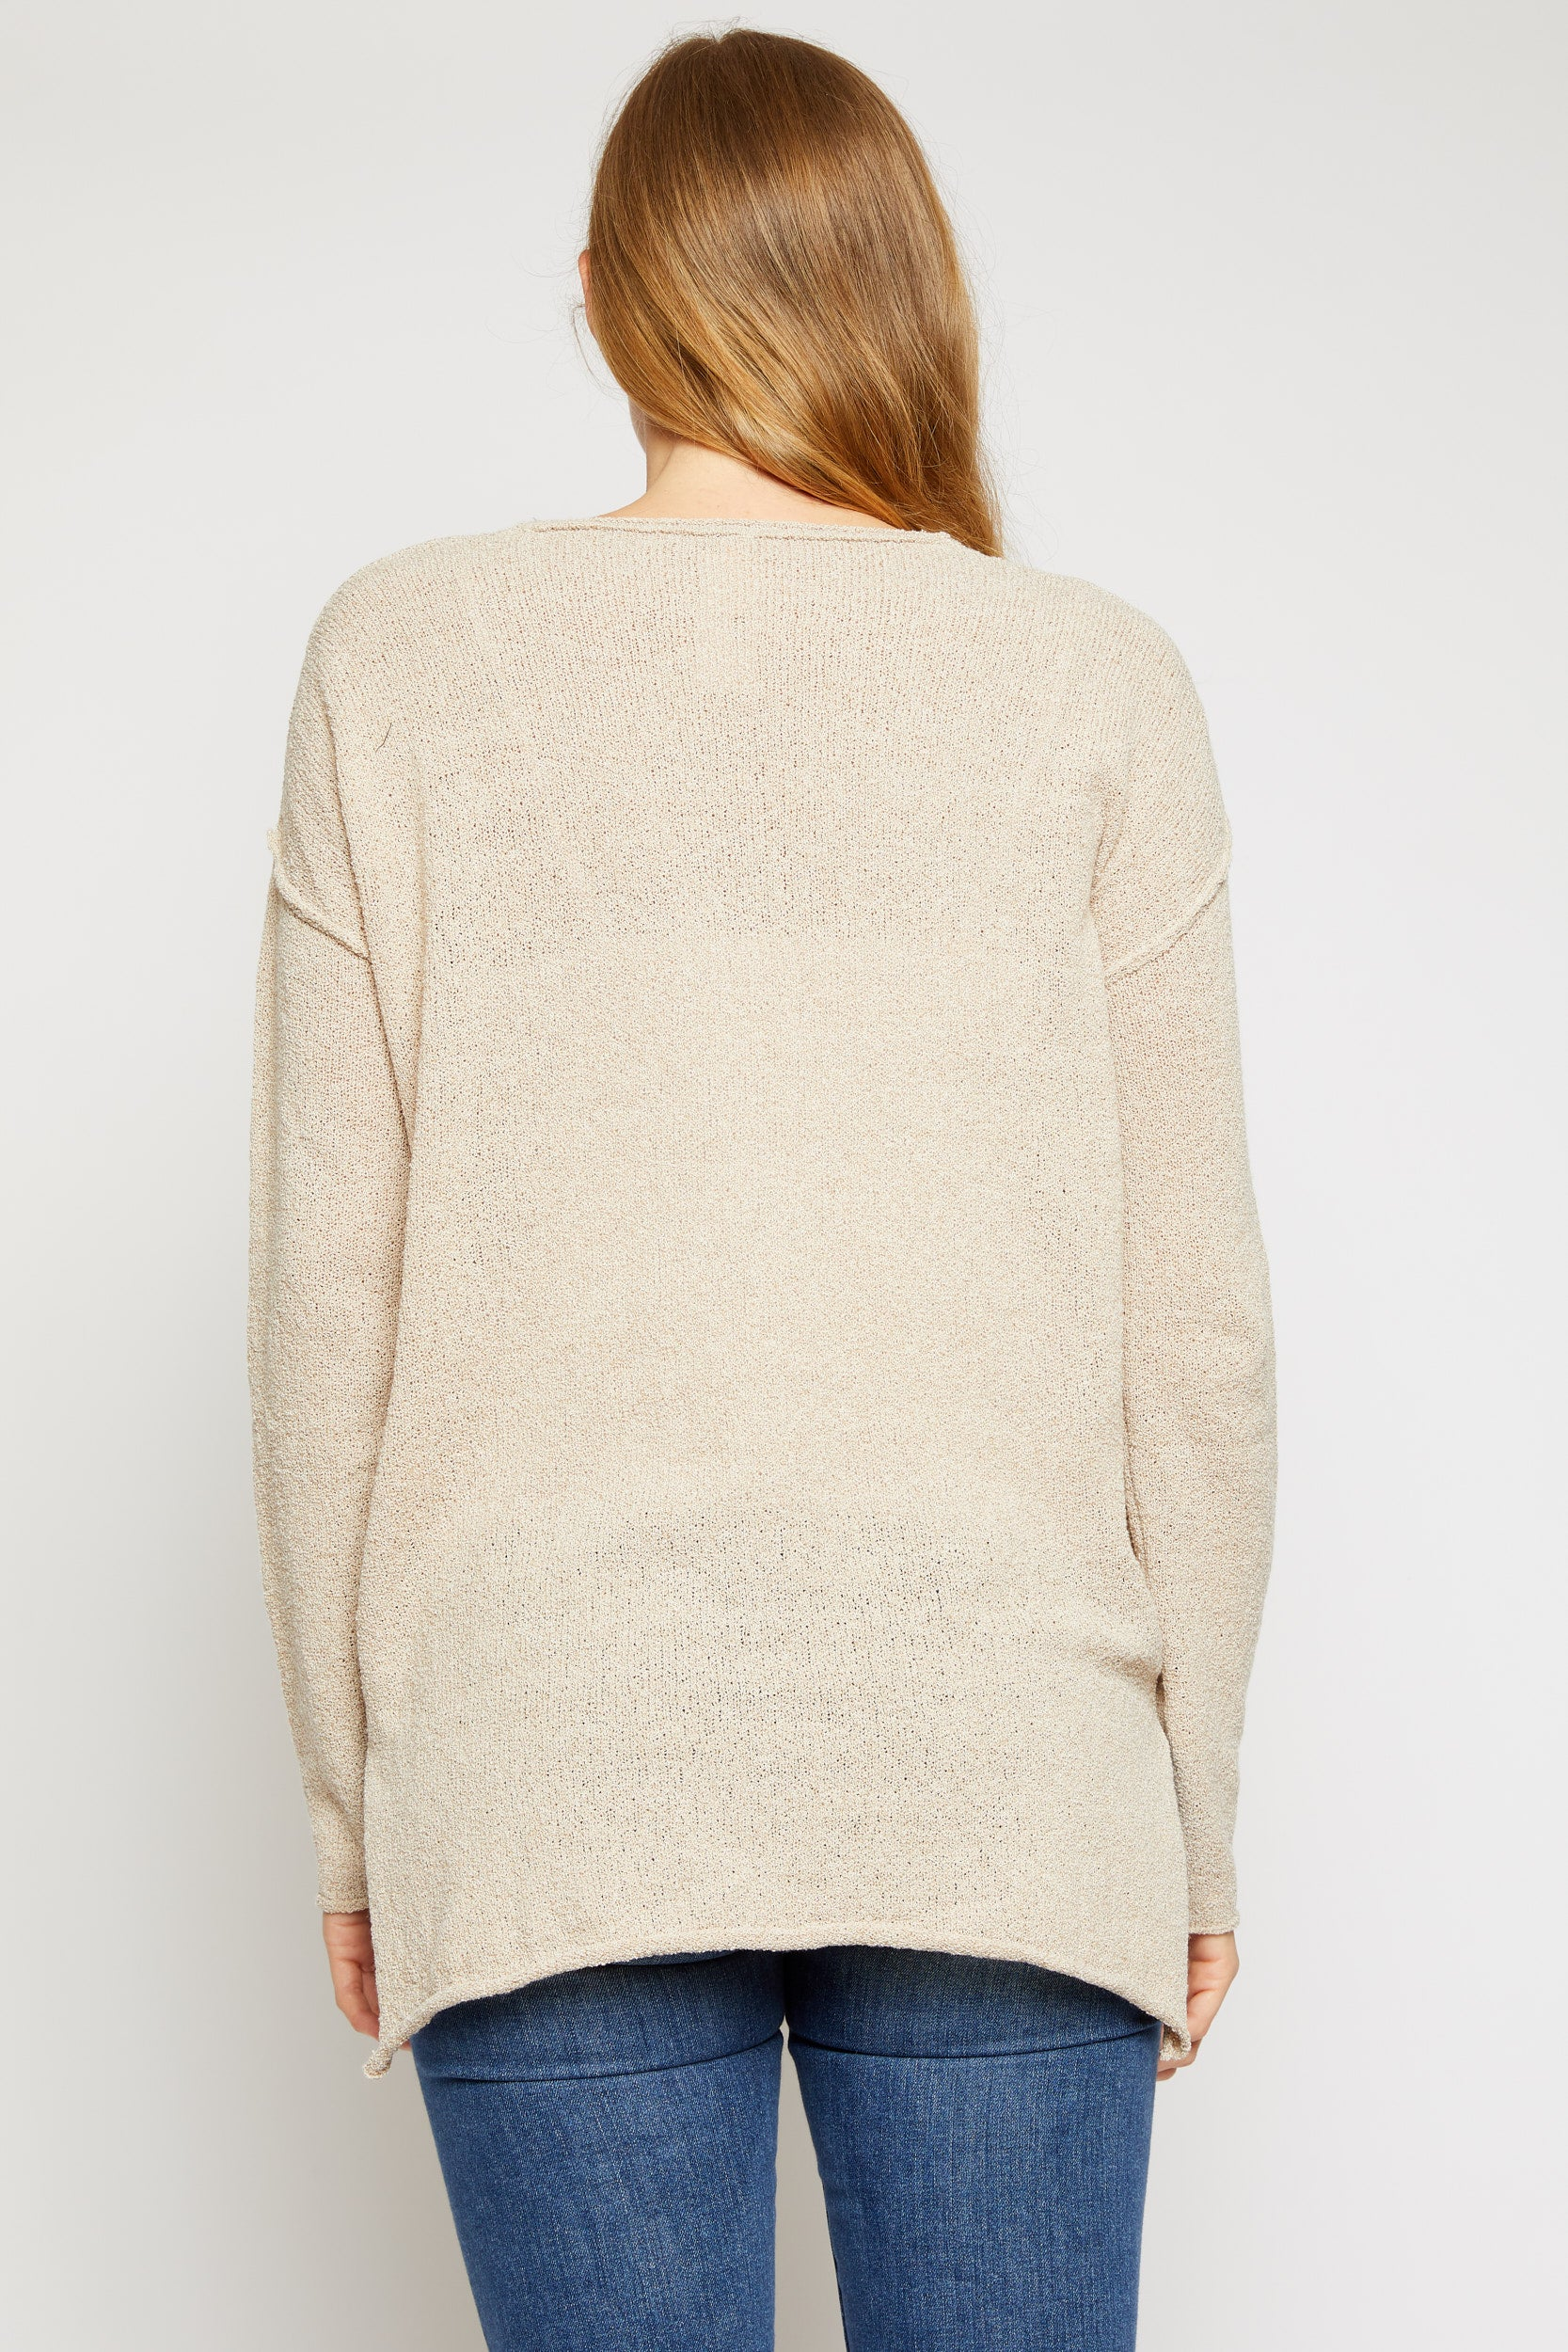 Knit Oversized Sweater - Jacqueline B Clothing